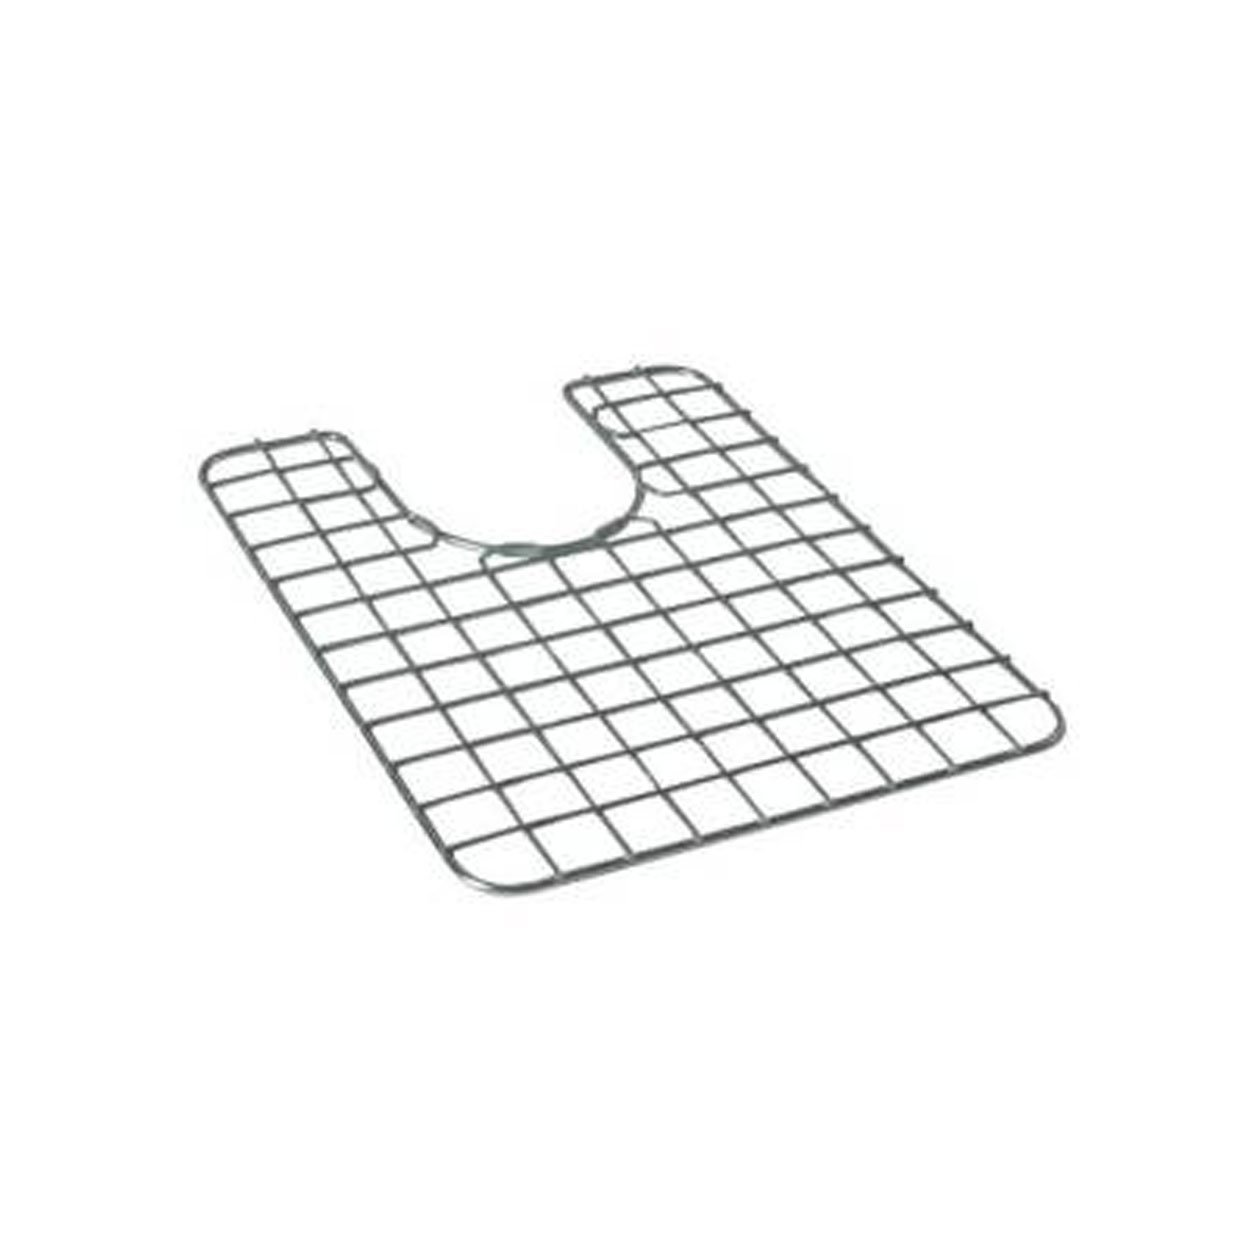 Franke KB13-36C Kubus Stainless Steel Coated Sink Rack for KBX-110-13 by Franke